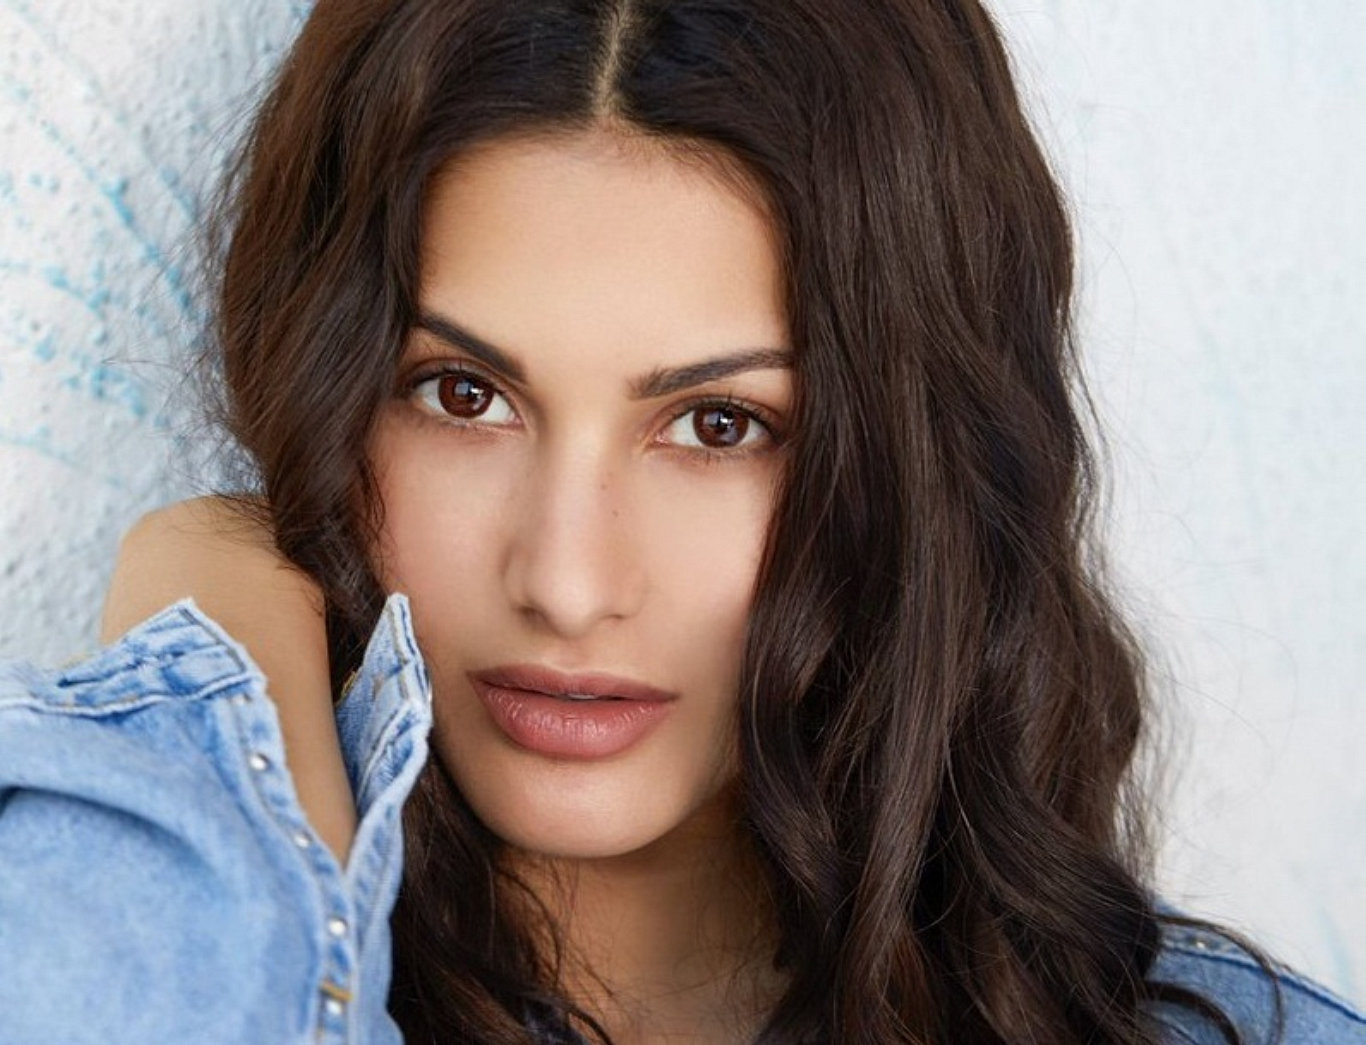 Amyra Dastur Cute Face HD Wallpaper